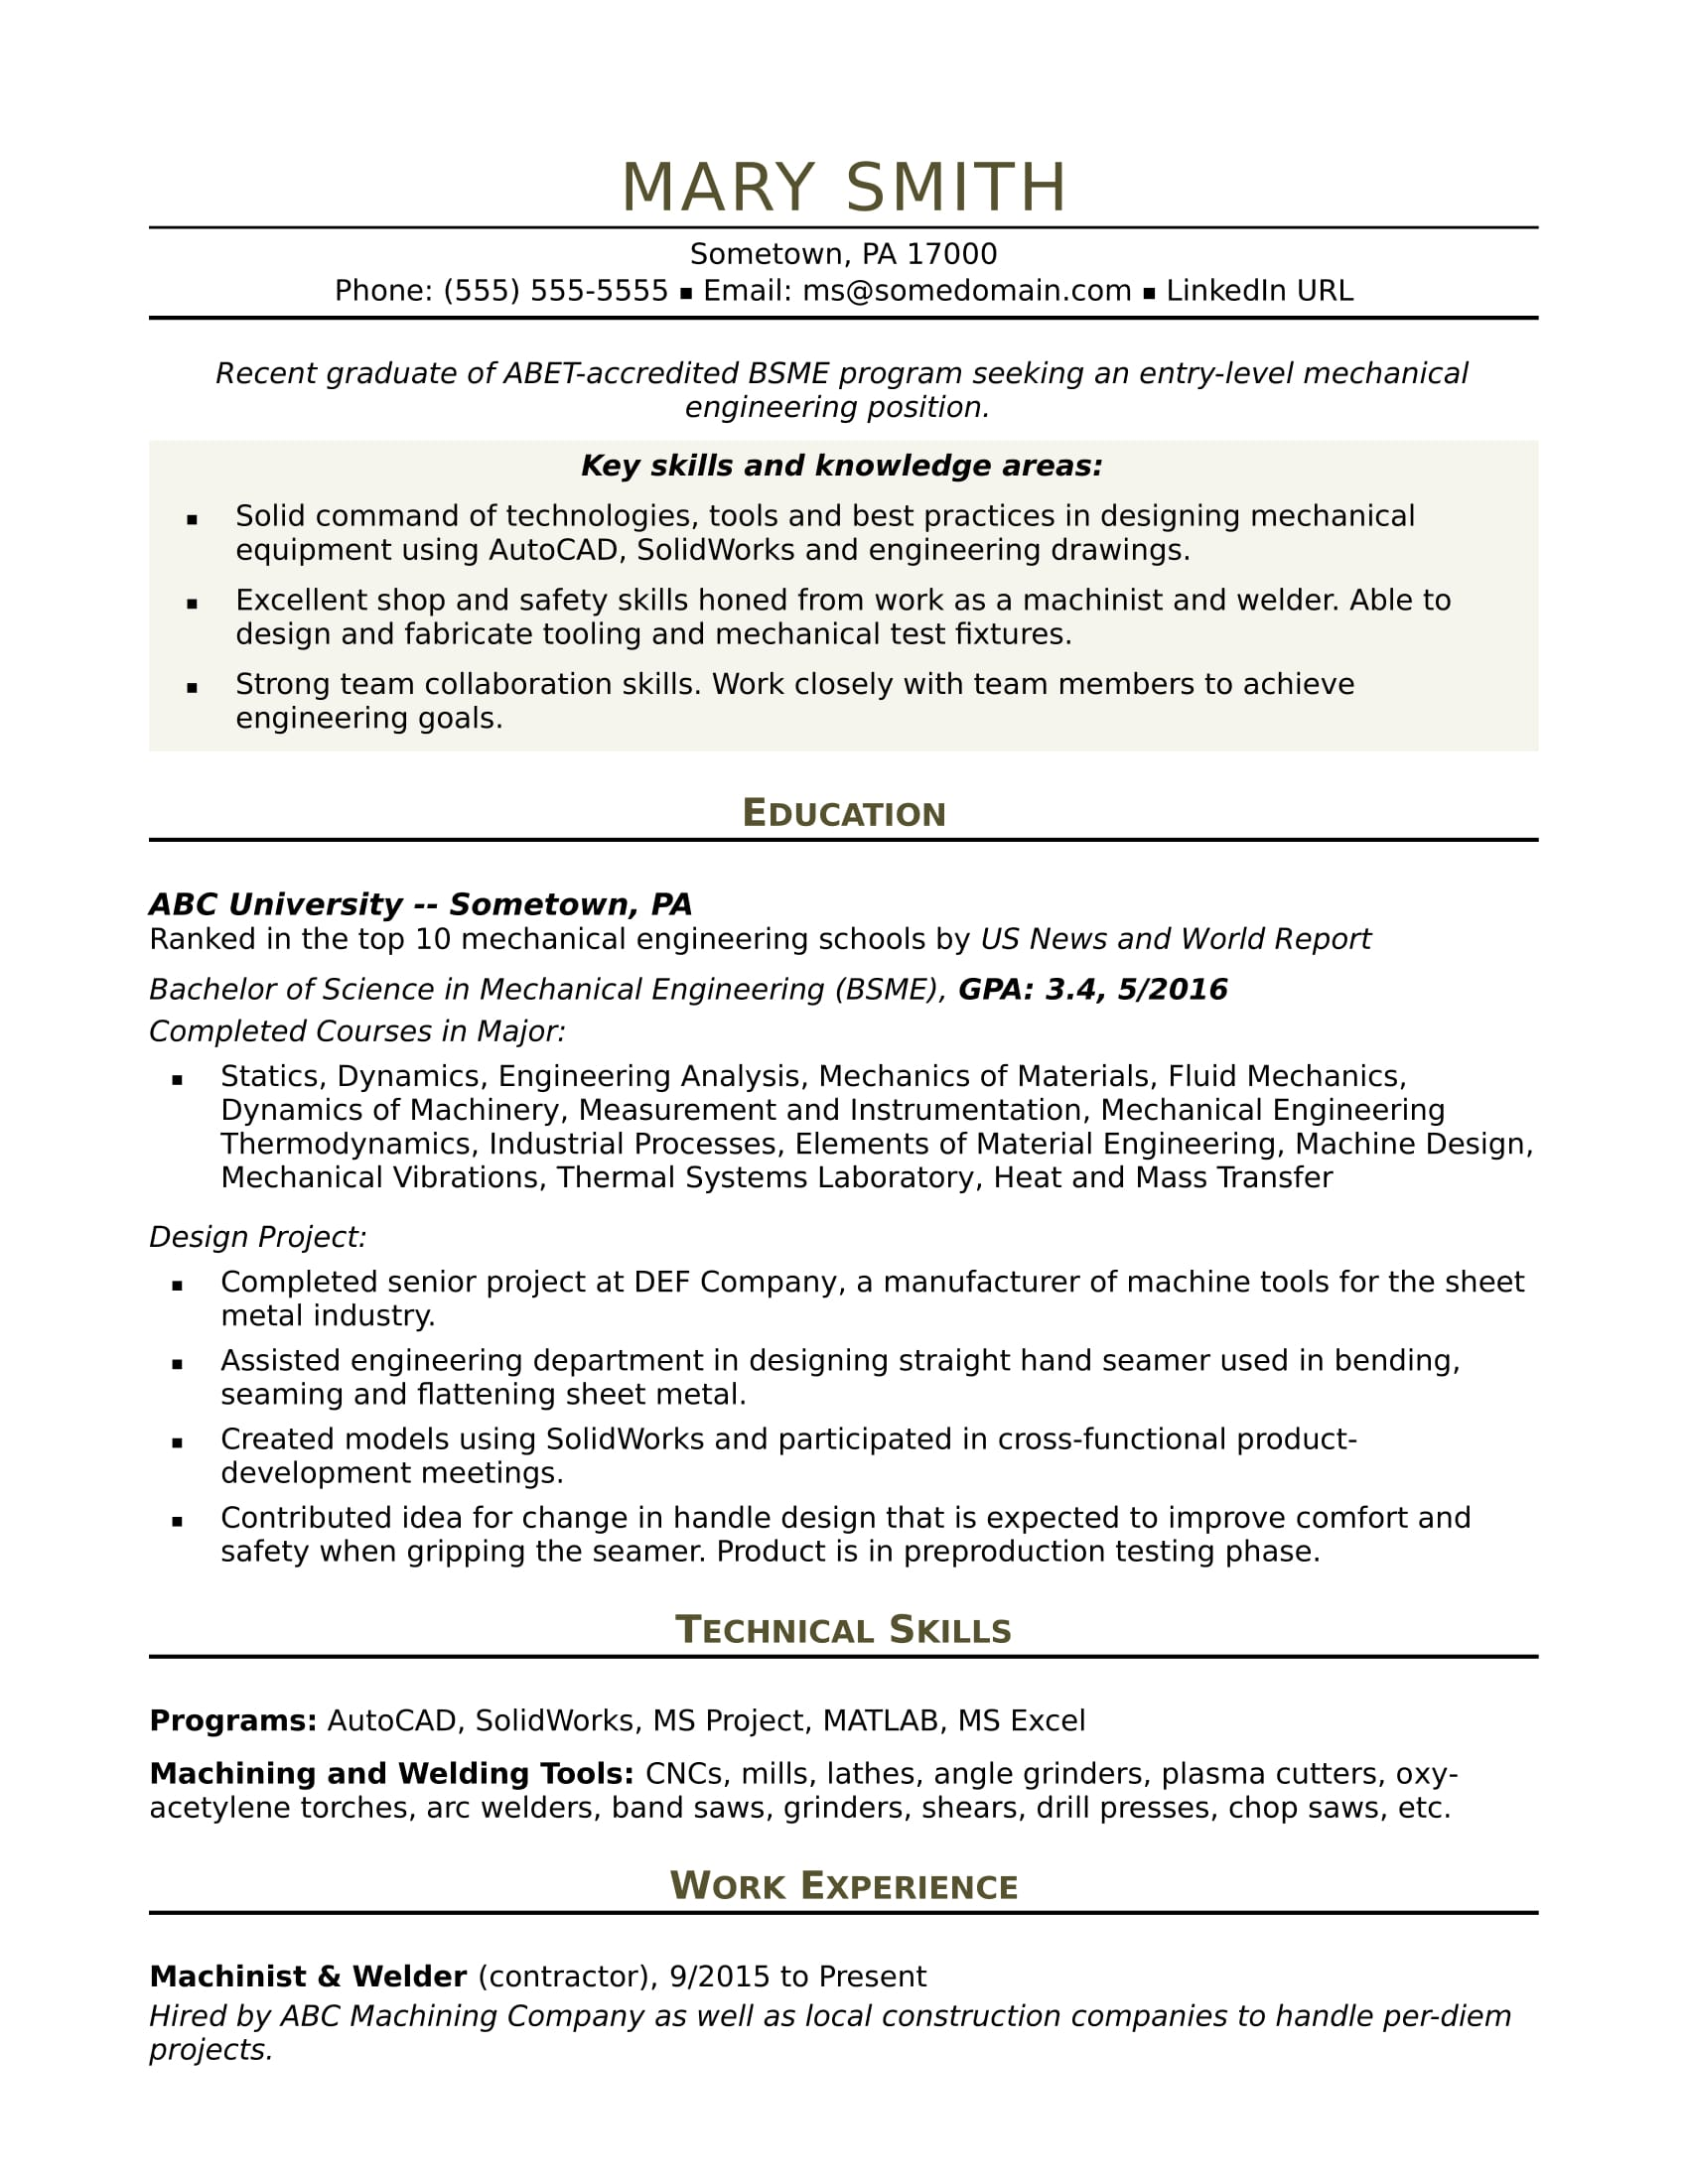 resume for entry level position